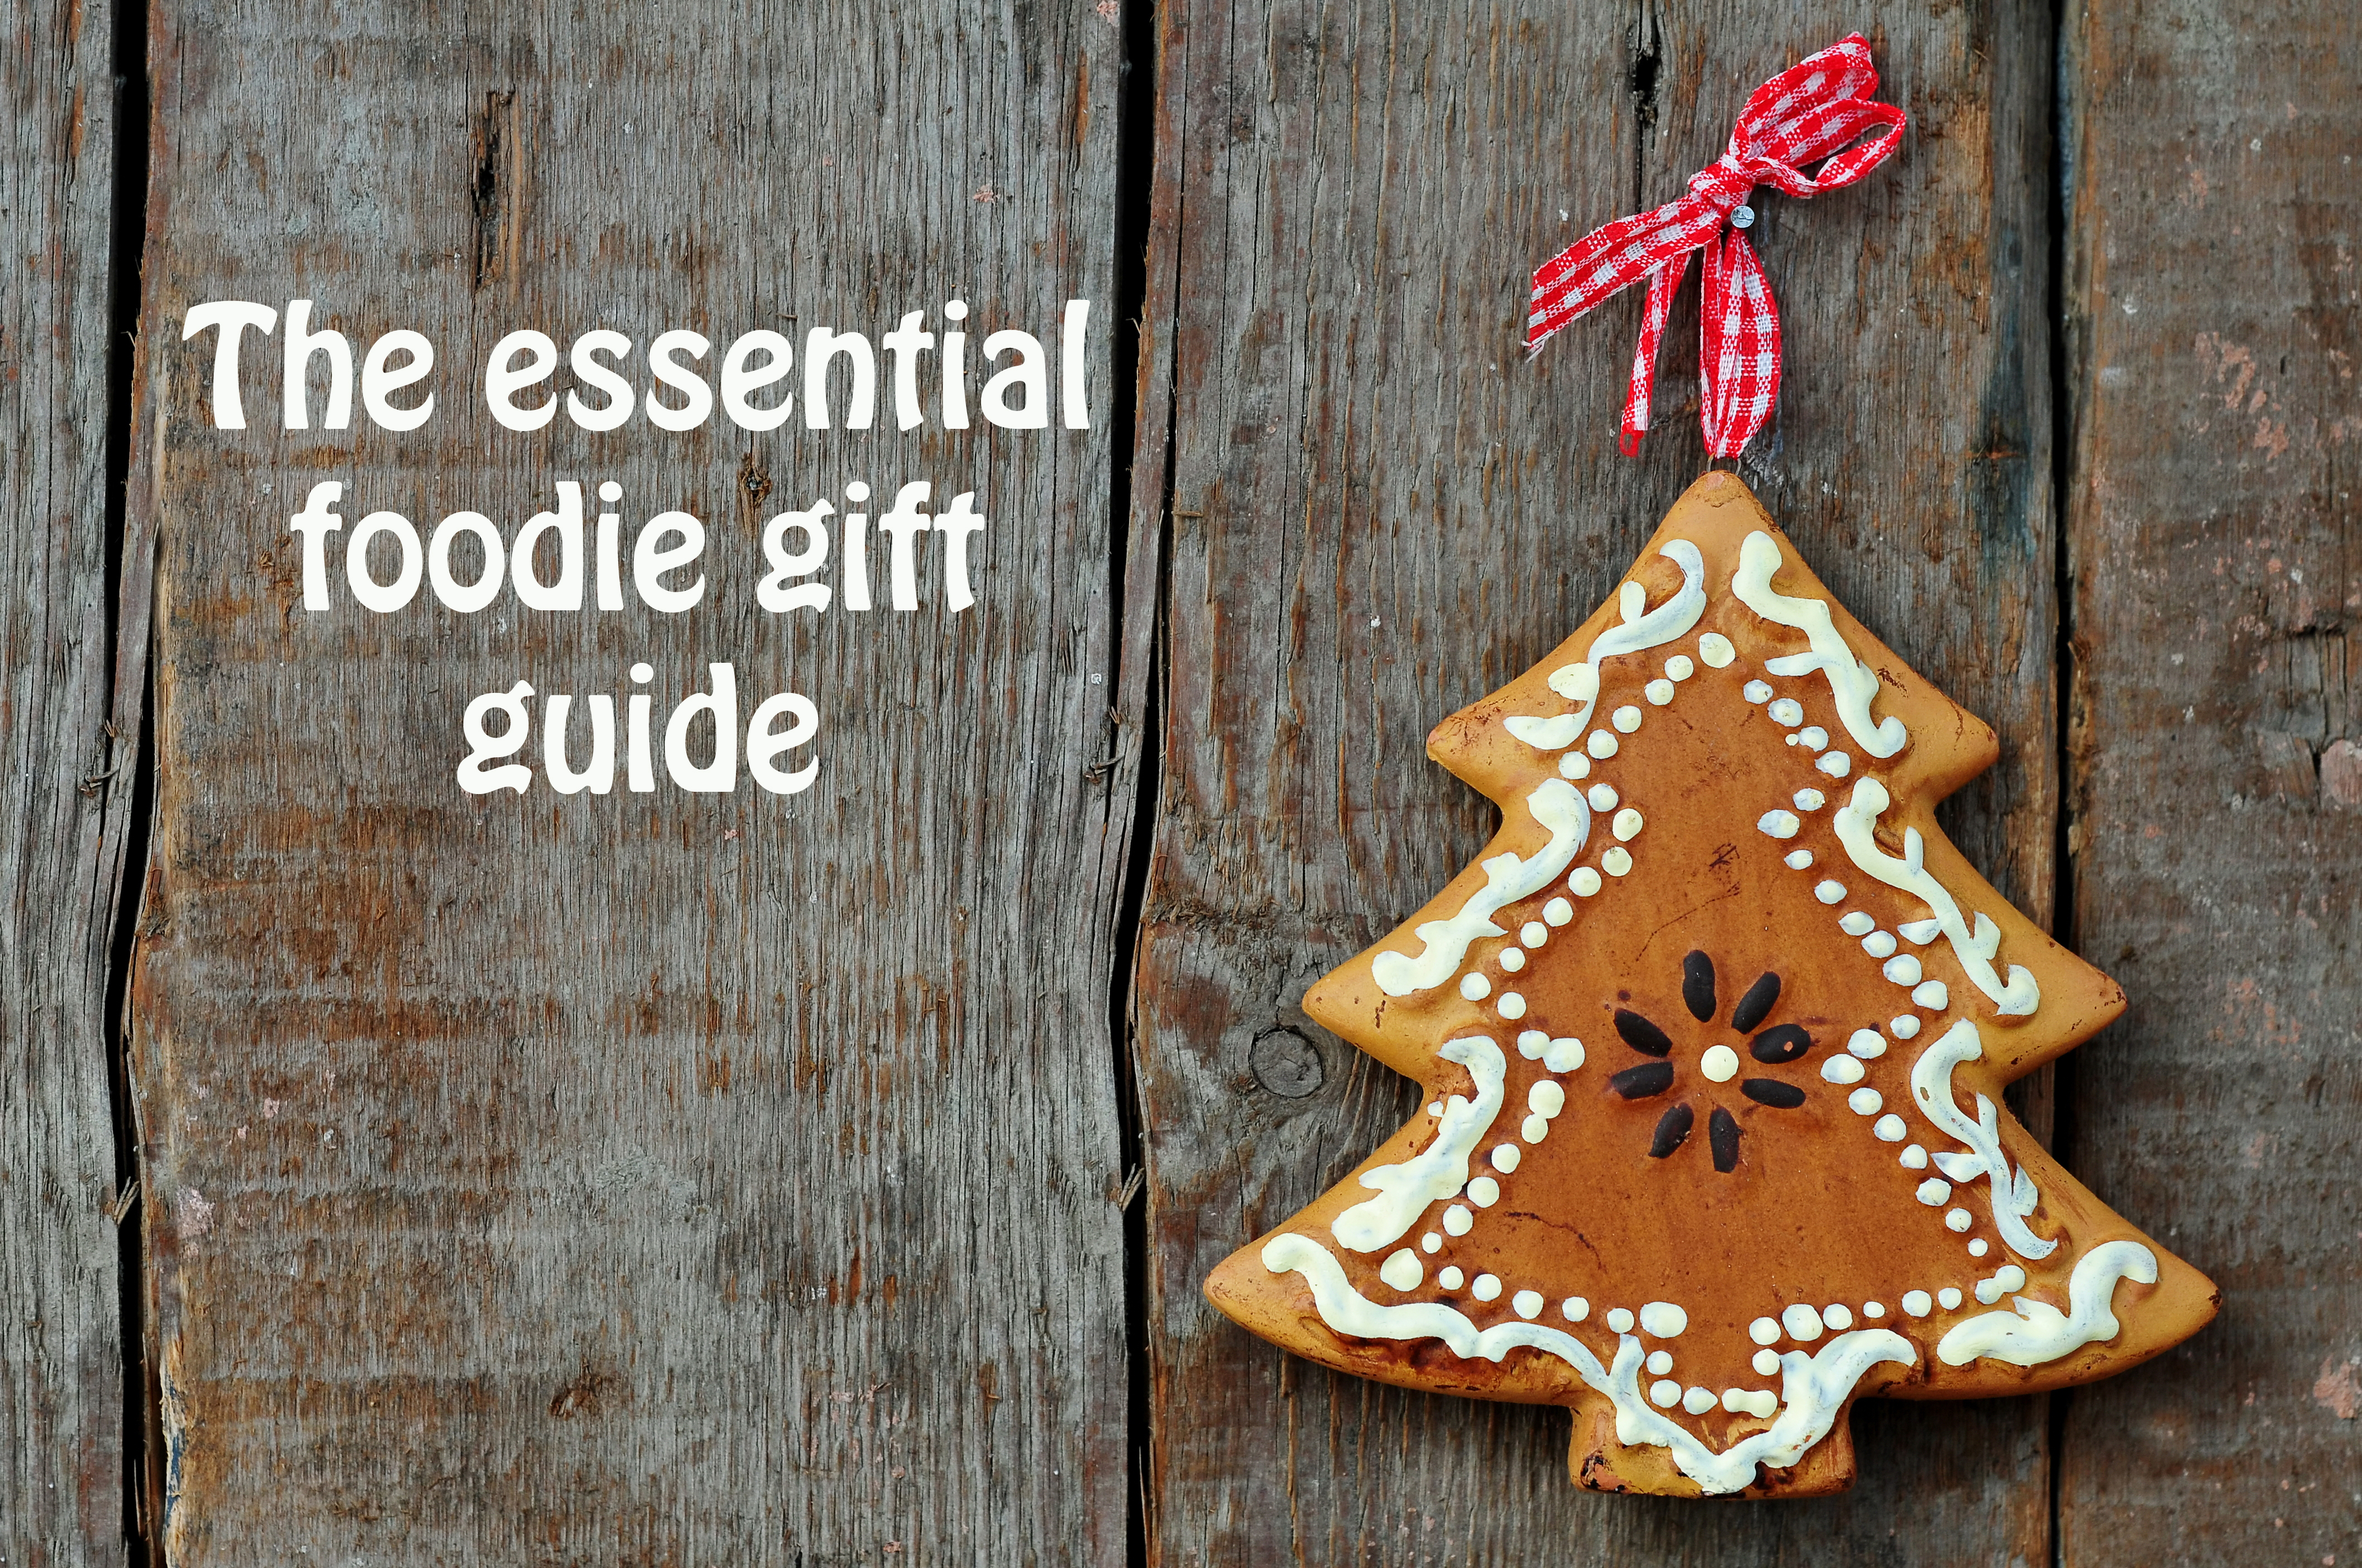 The essential foodie gift guide | Milk and Cookies SA